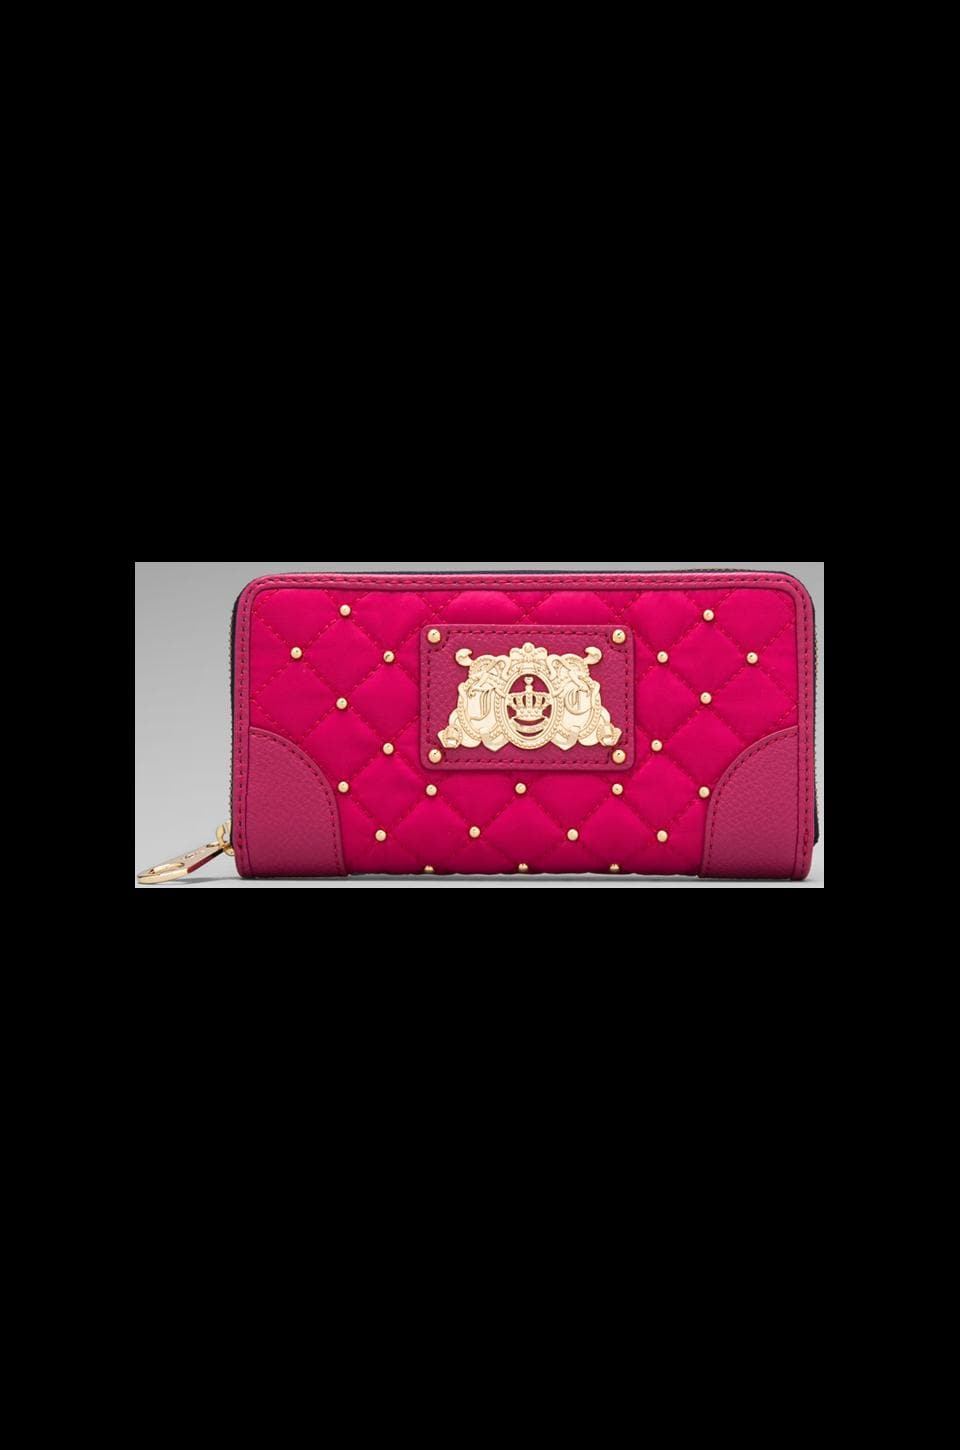 Juicy Couture Ongoing Nylon Quilted/Studded Zip Wallet in Hot Pink